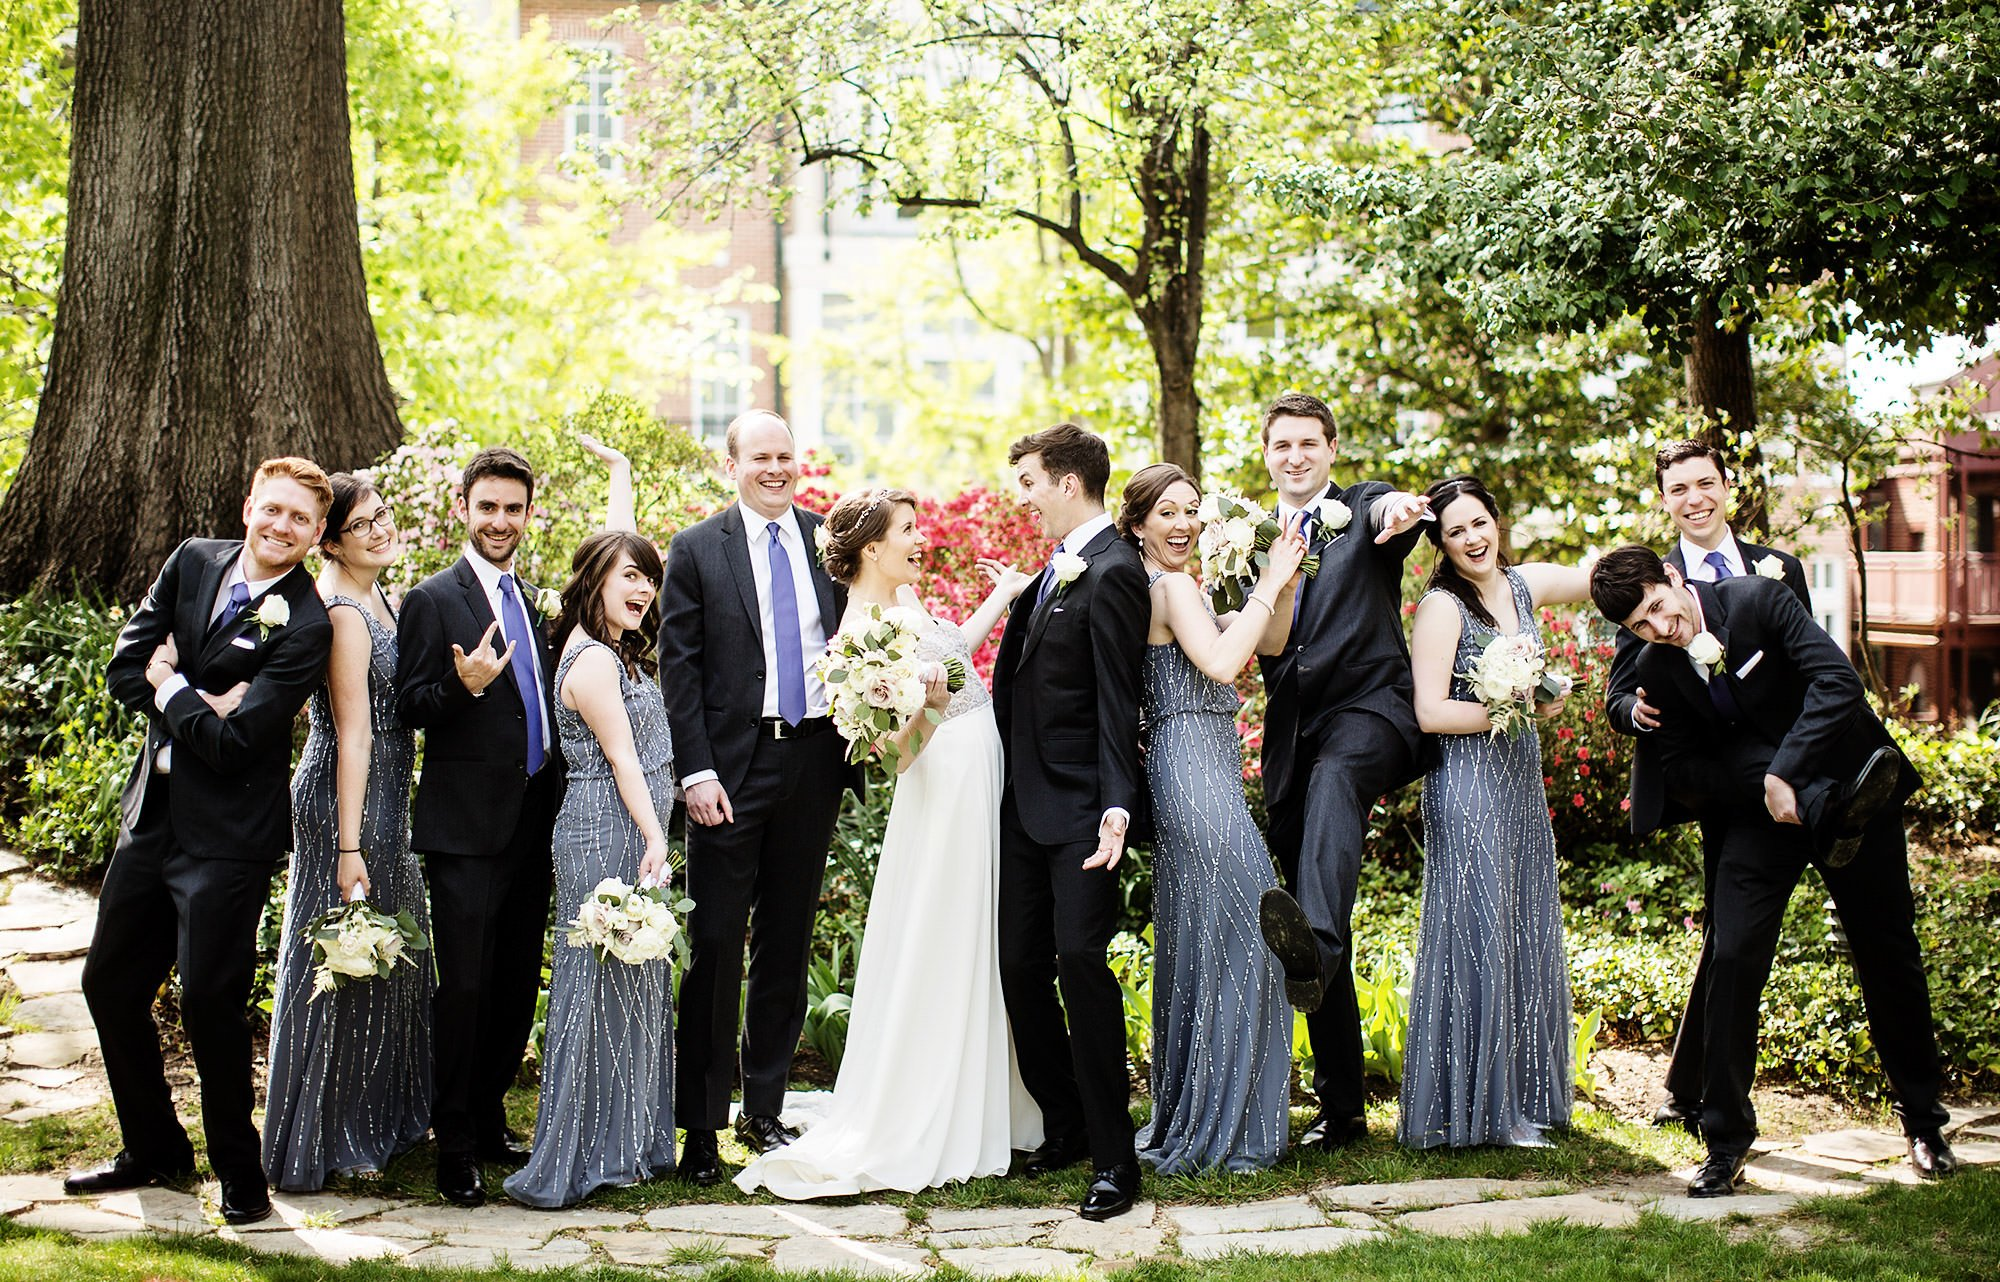 A portrait of the wedding party on the grounds of Meridian House.